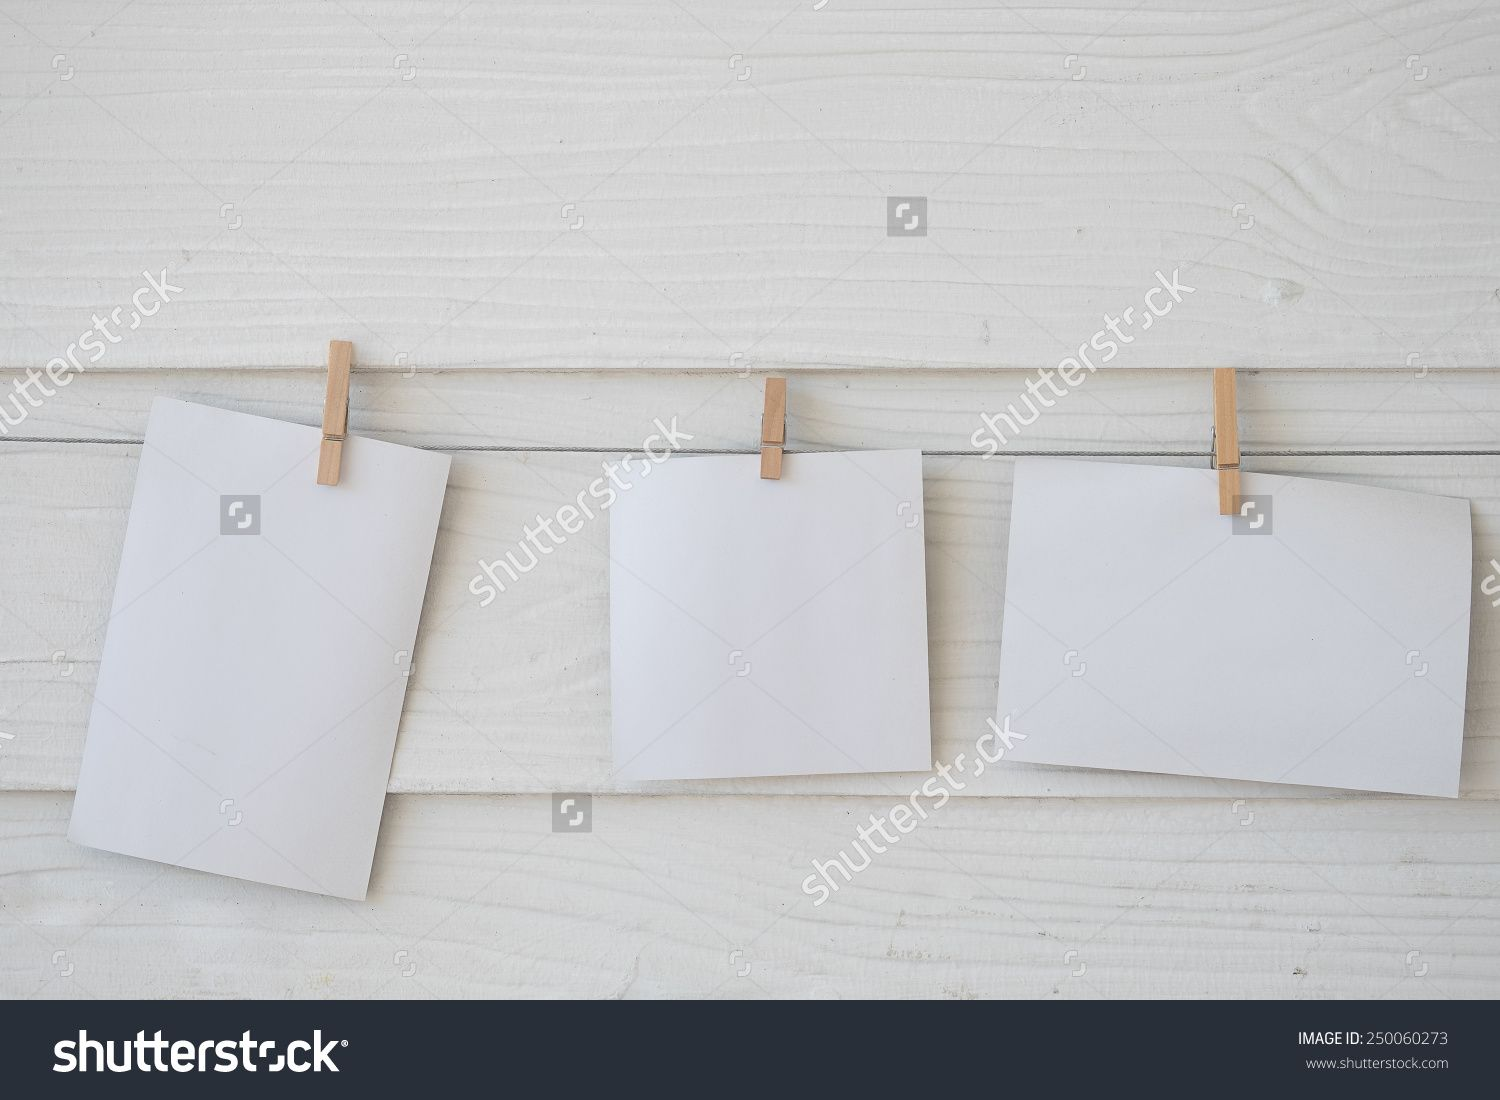 Hanging Empty Photo Paper Frame Over White Wood Background - 250060273 : Shutterstock